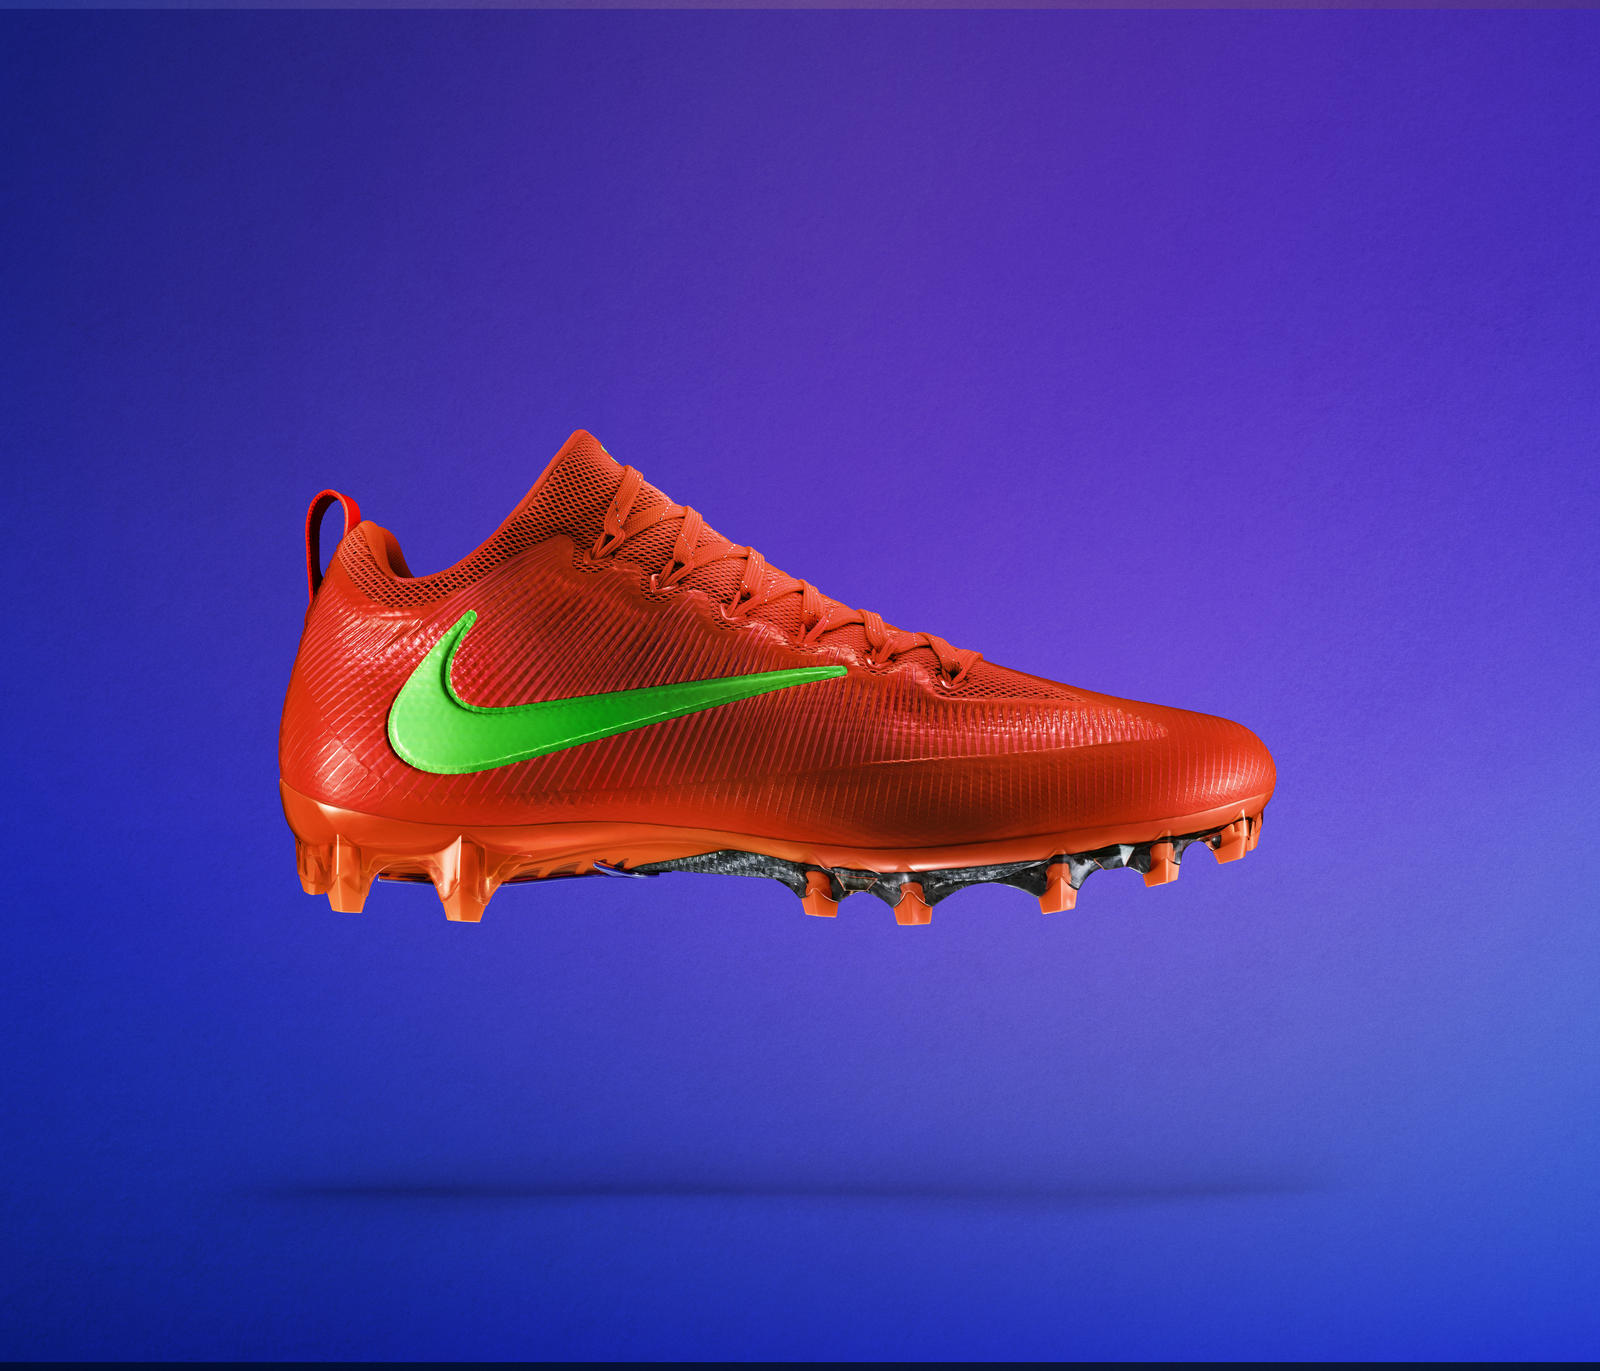 Stadium In Lights And Flashes: Nike Football Flashes Color At The Speed Of Light